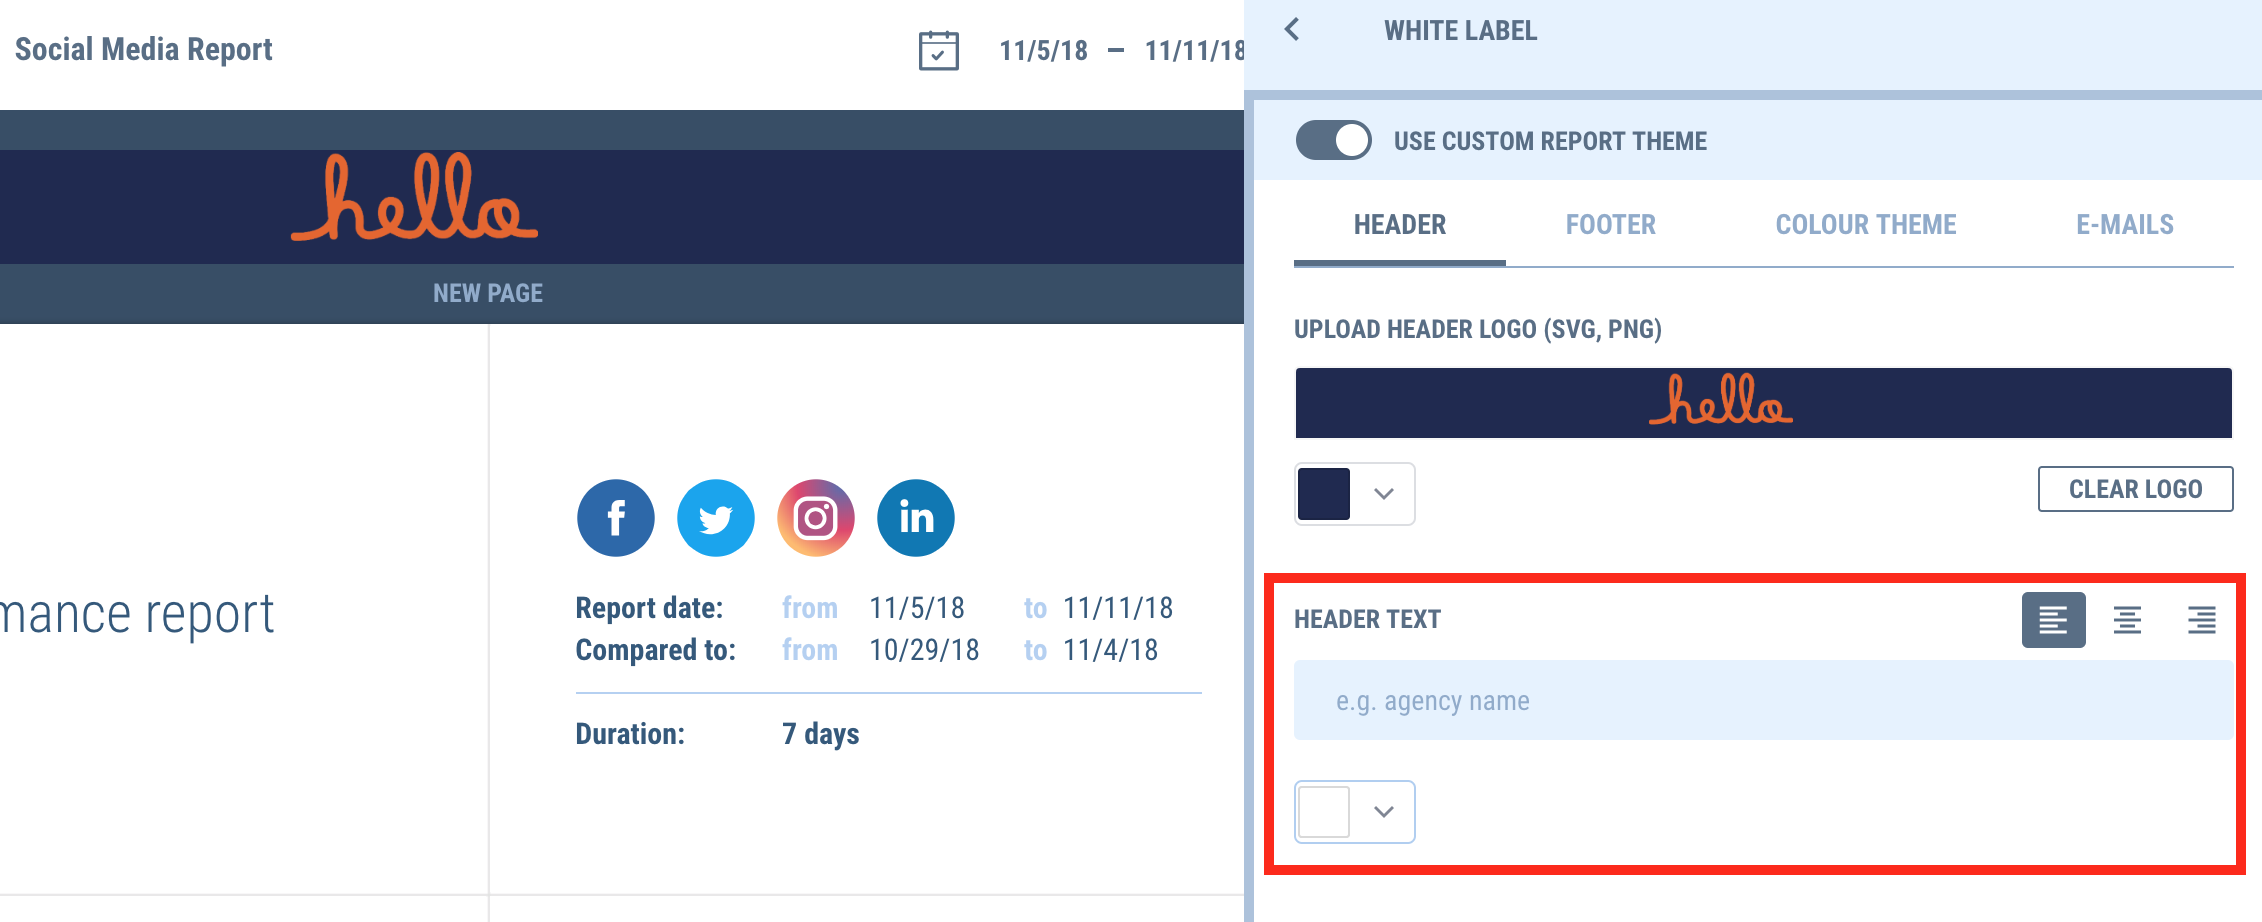 Add custom text to your report footer with the new white label update